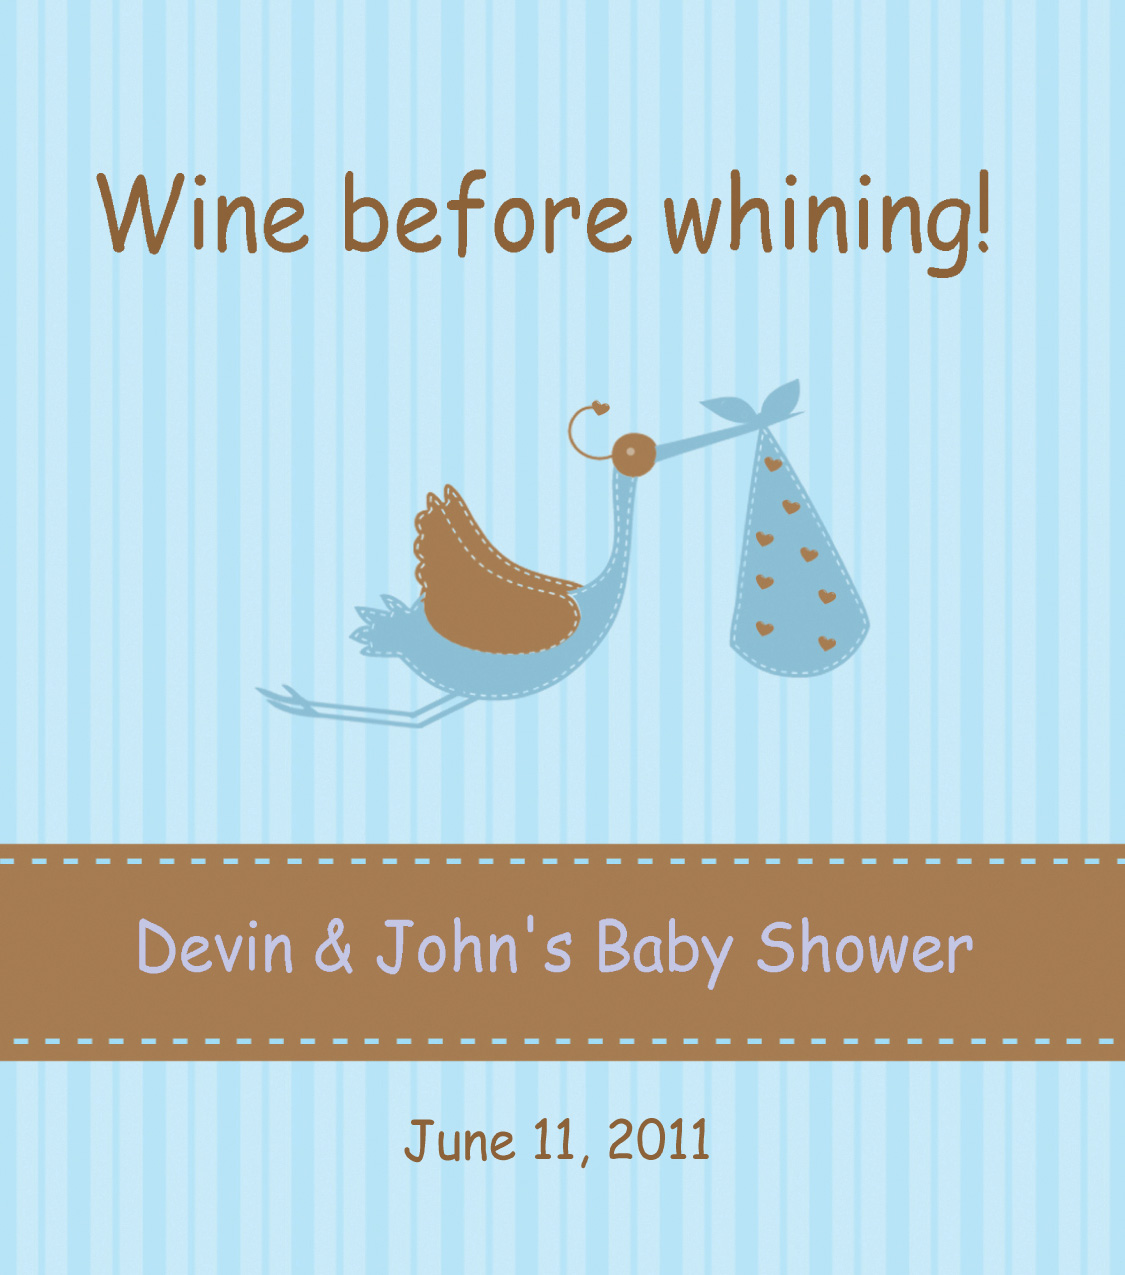 Custom Wine Label for Baby Shower, from Bottle Your Brand